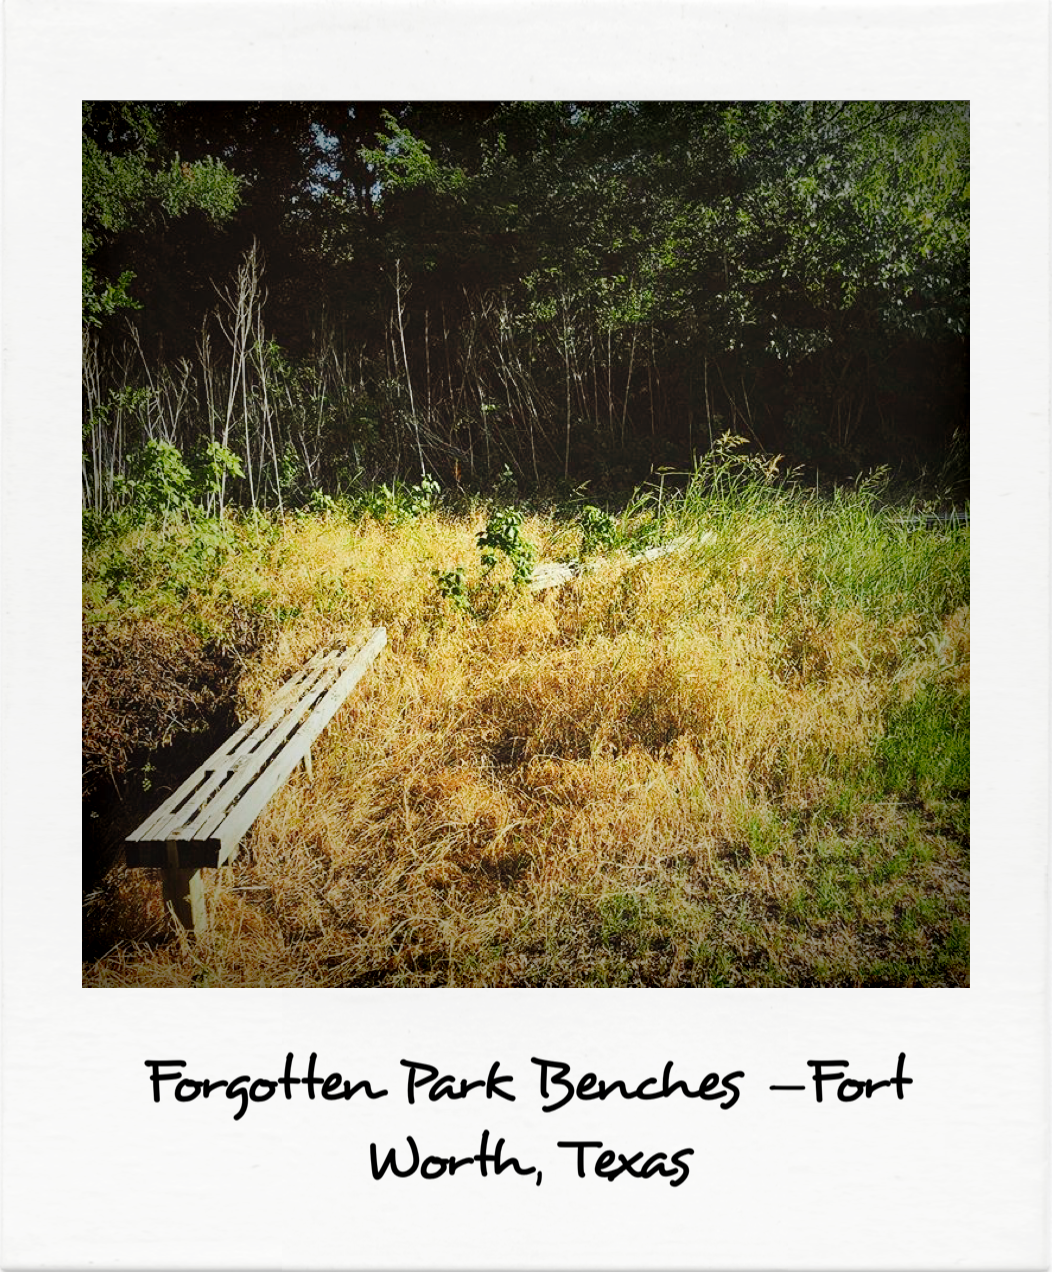 Forgotten Park Benches - Fort Worth, Texas